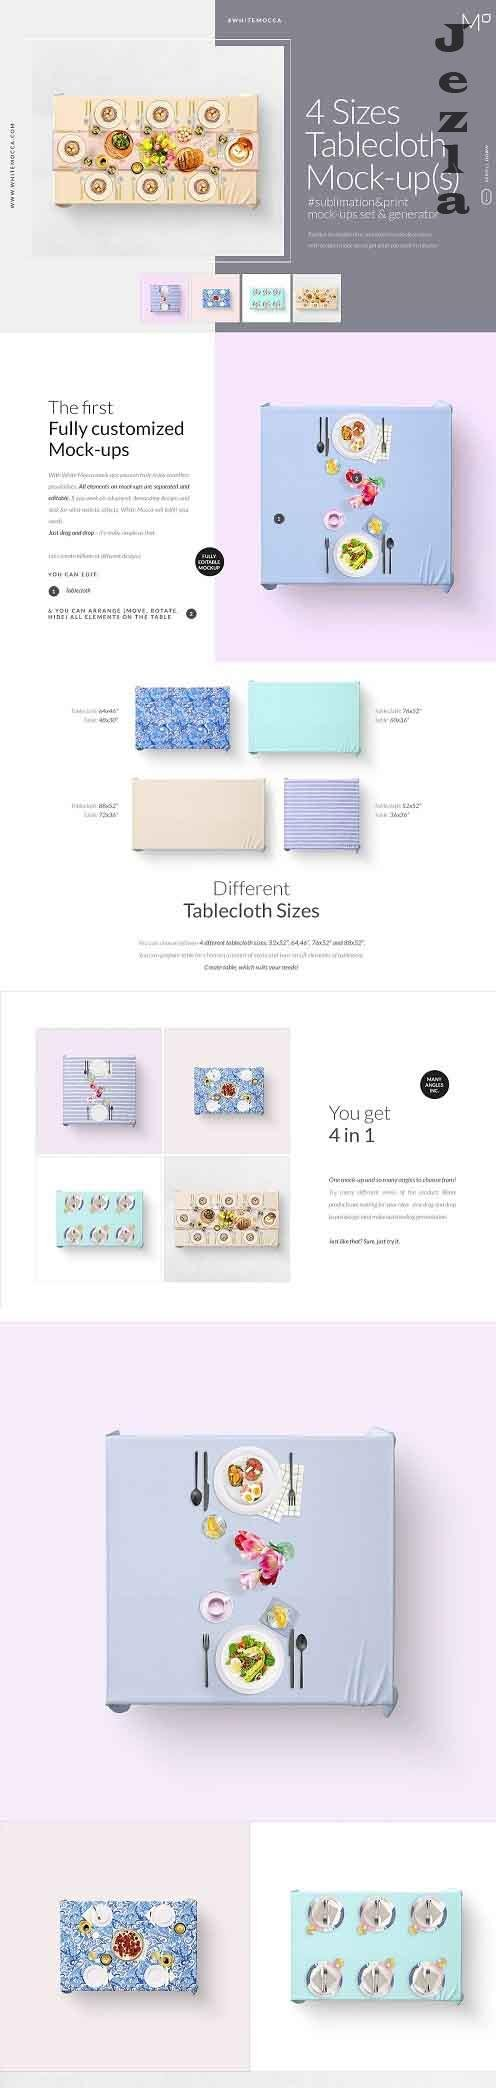 CreativeMarket - Tablecloth 4x Sizes Mock-ups Set 4821577